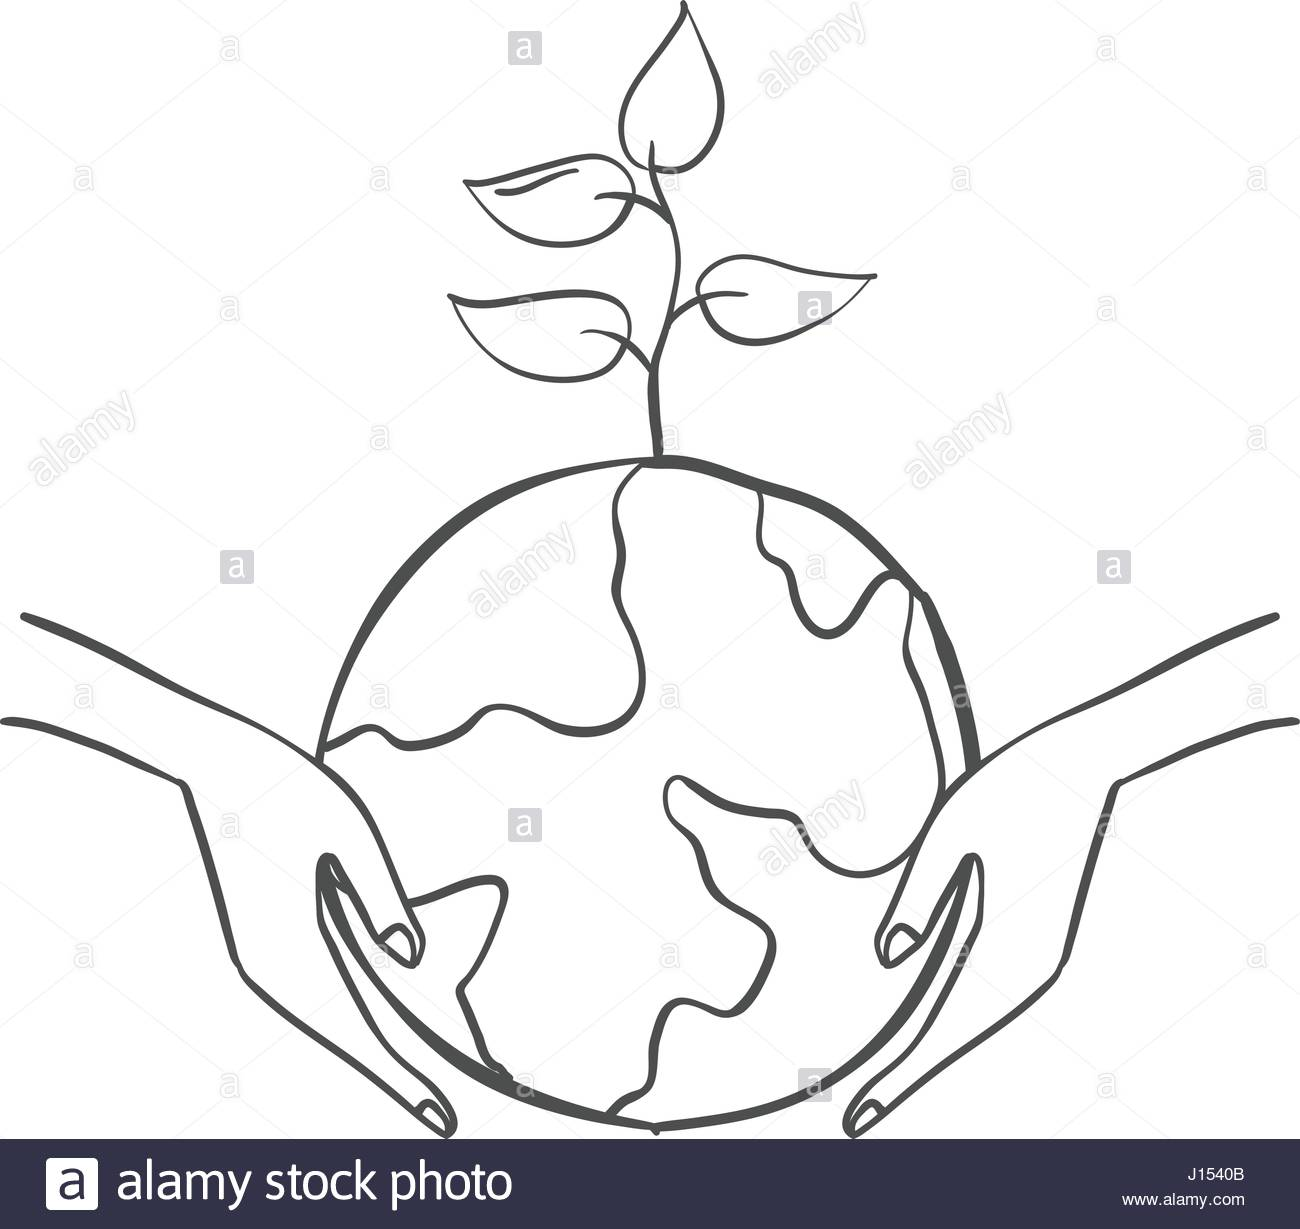 1300x1229 Save World With Tree Doodles Stock Vector Art Amp Illustration